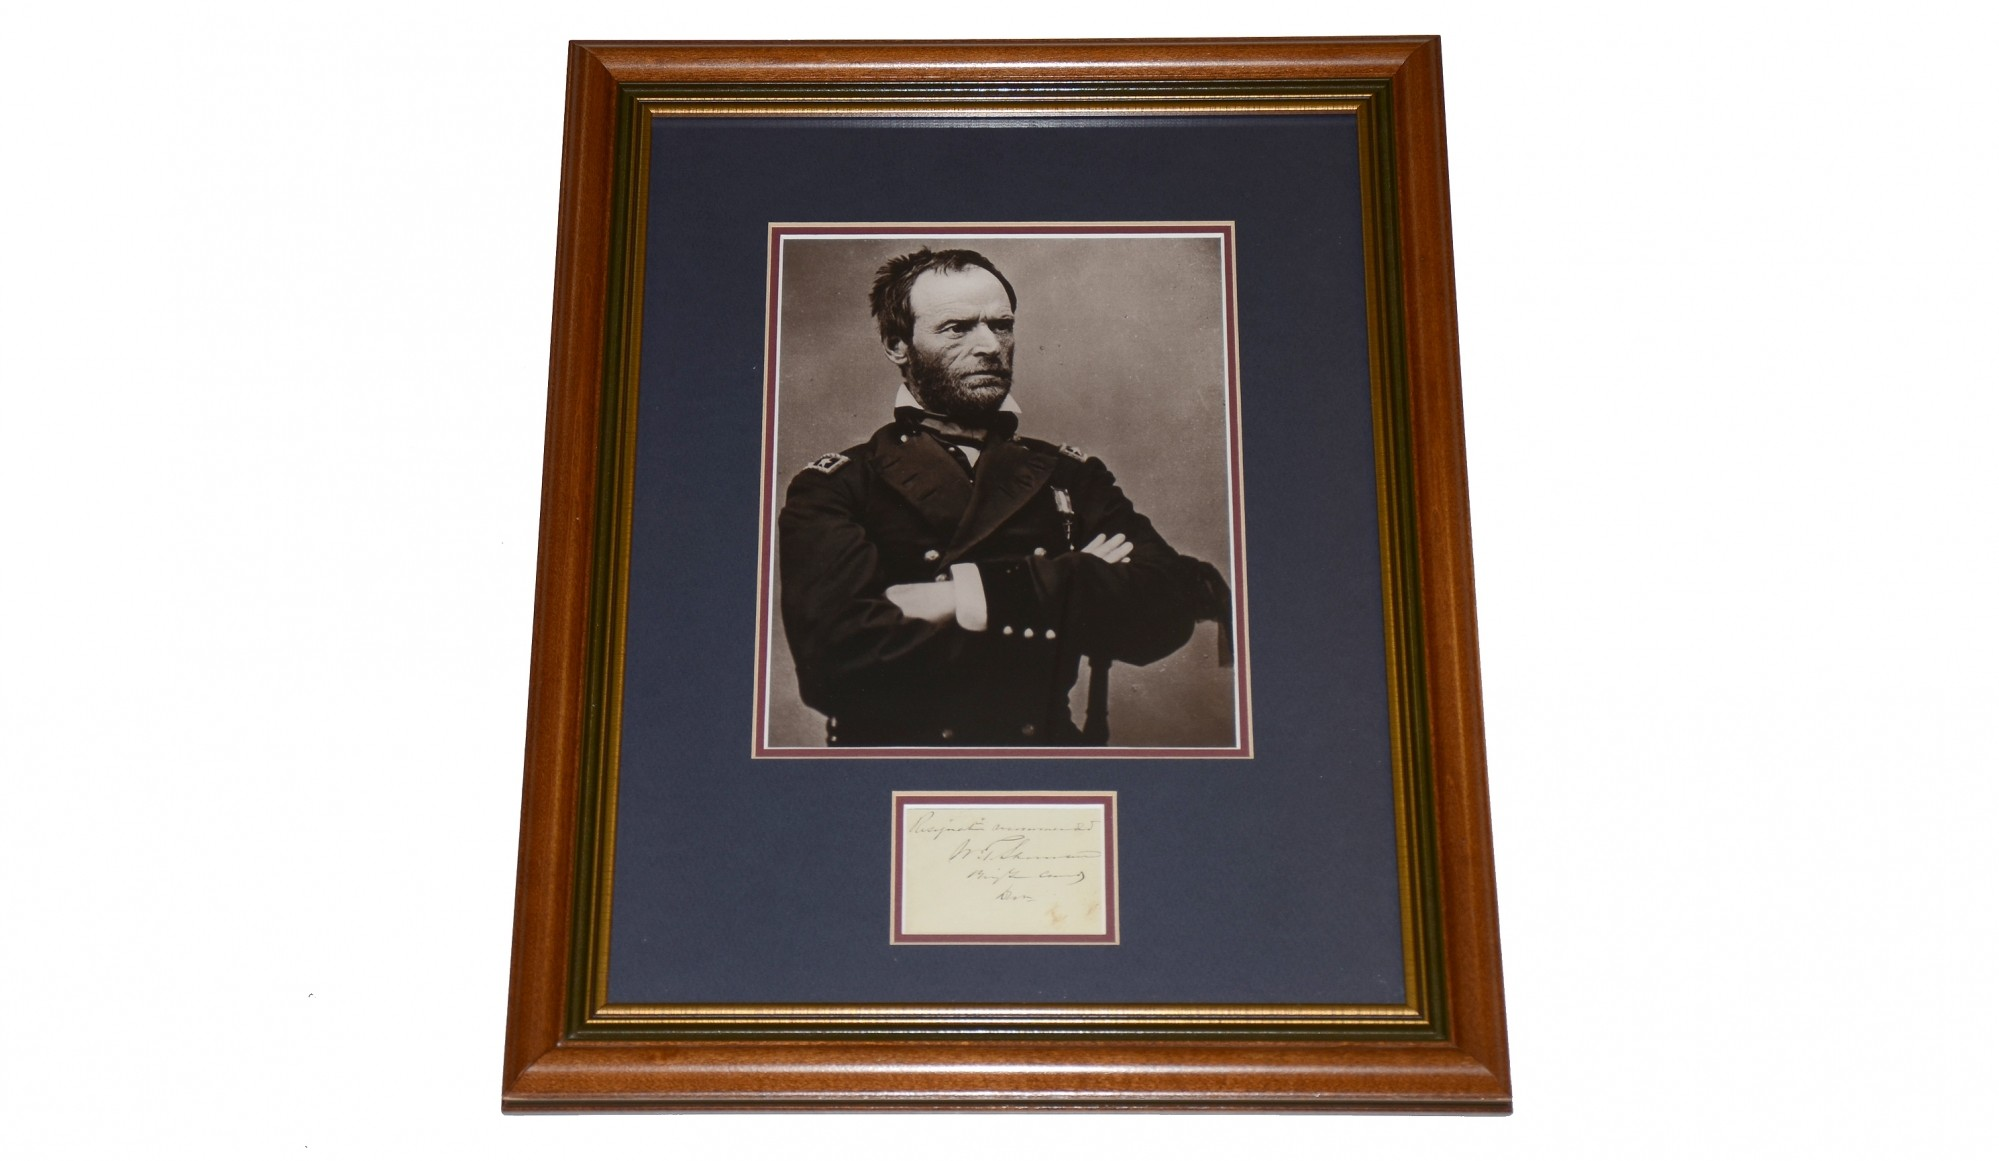 Framed autograph of general william t sherman as division framed autograph of general william t sherman as division commander jeuxipadfo Choice Image